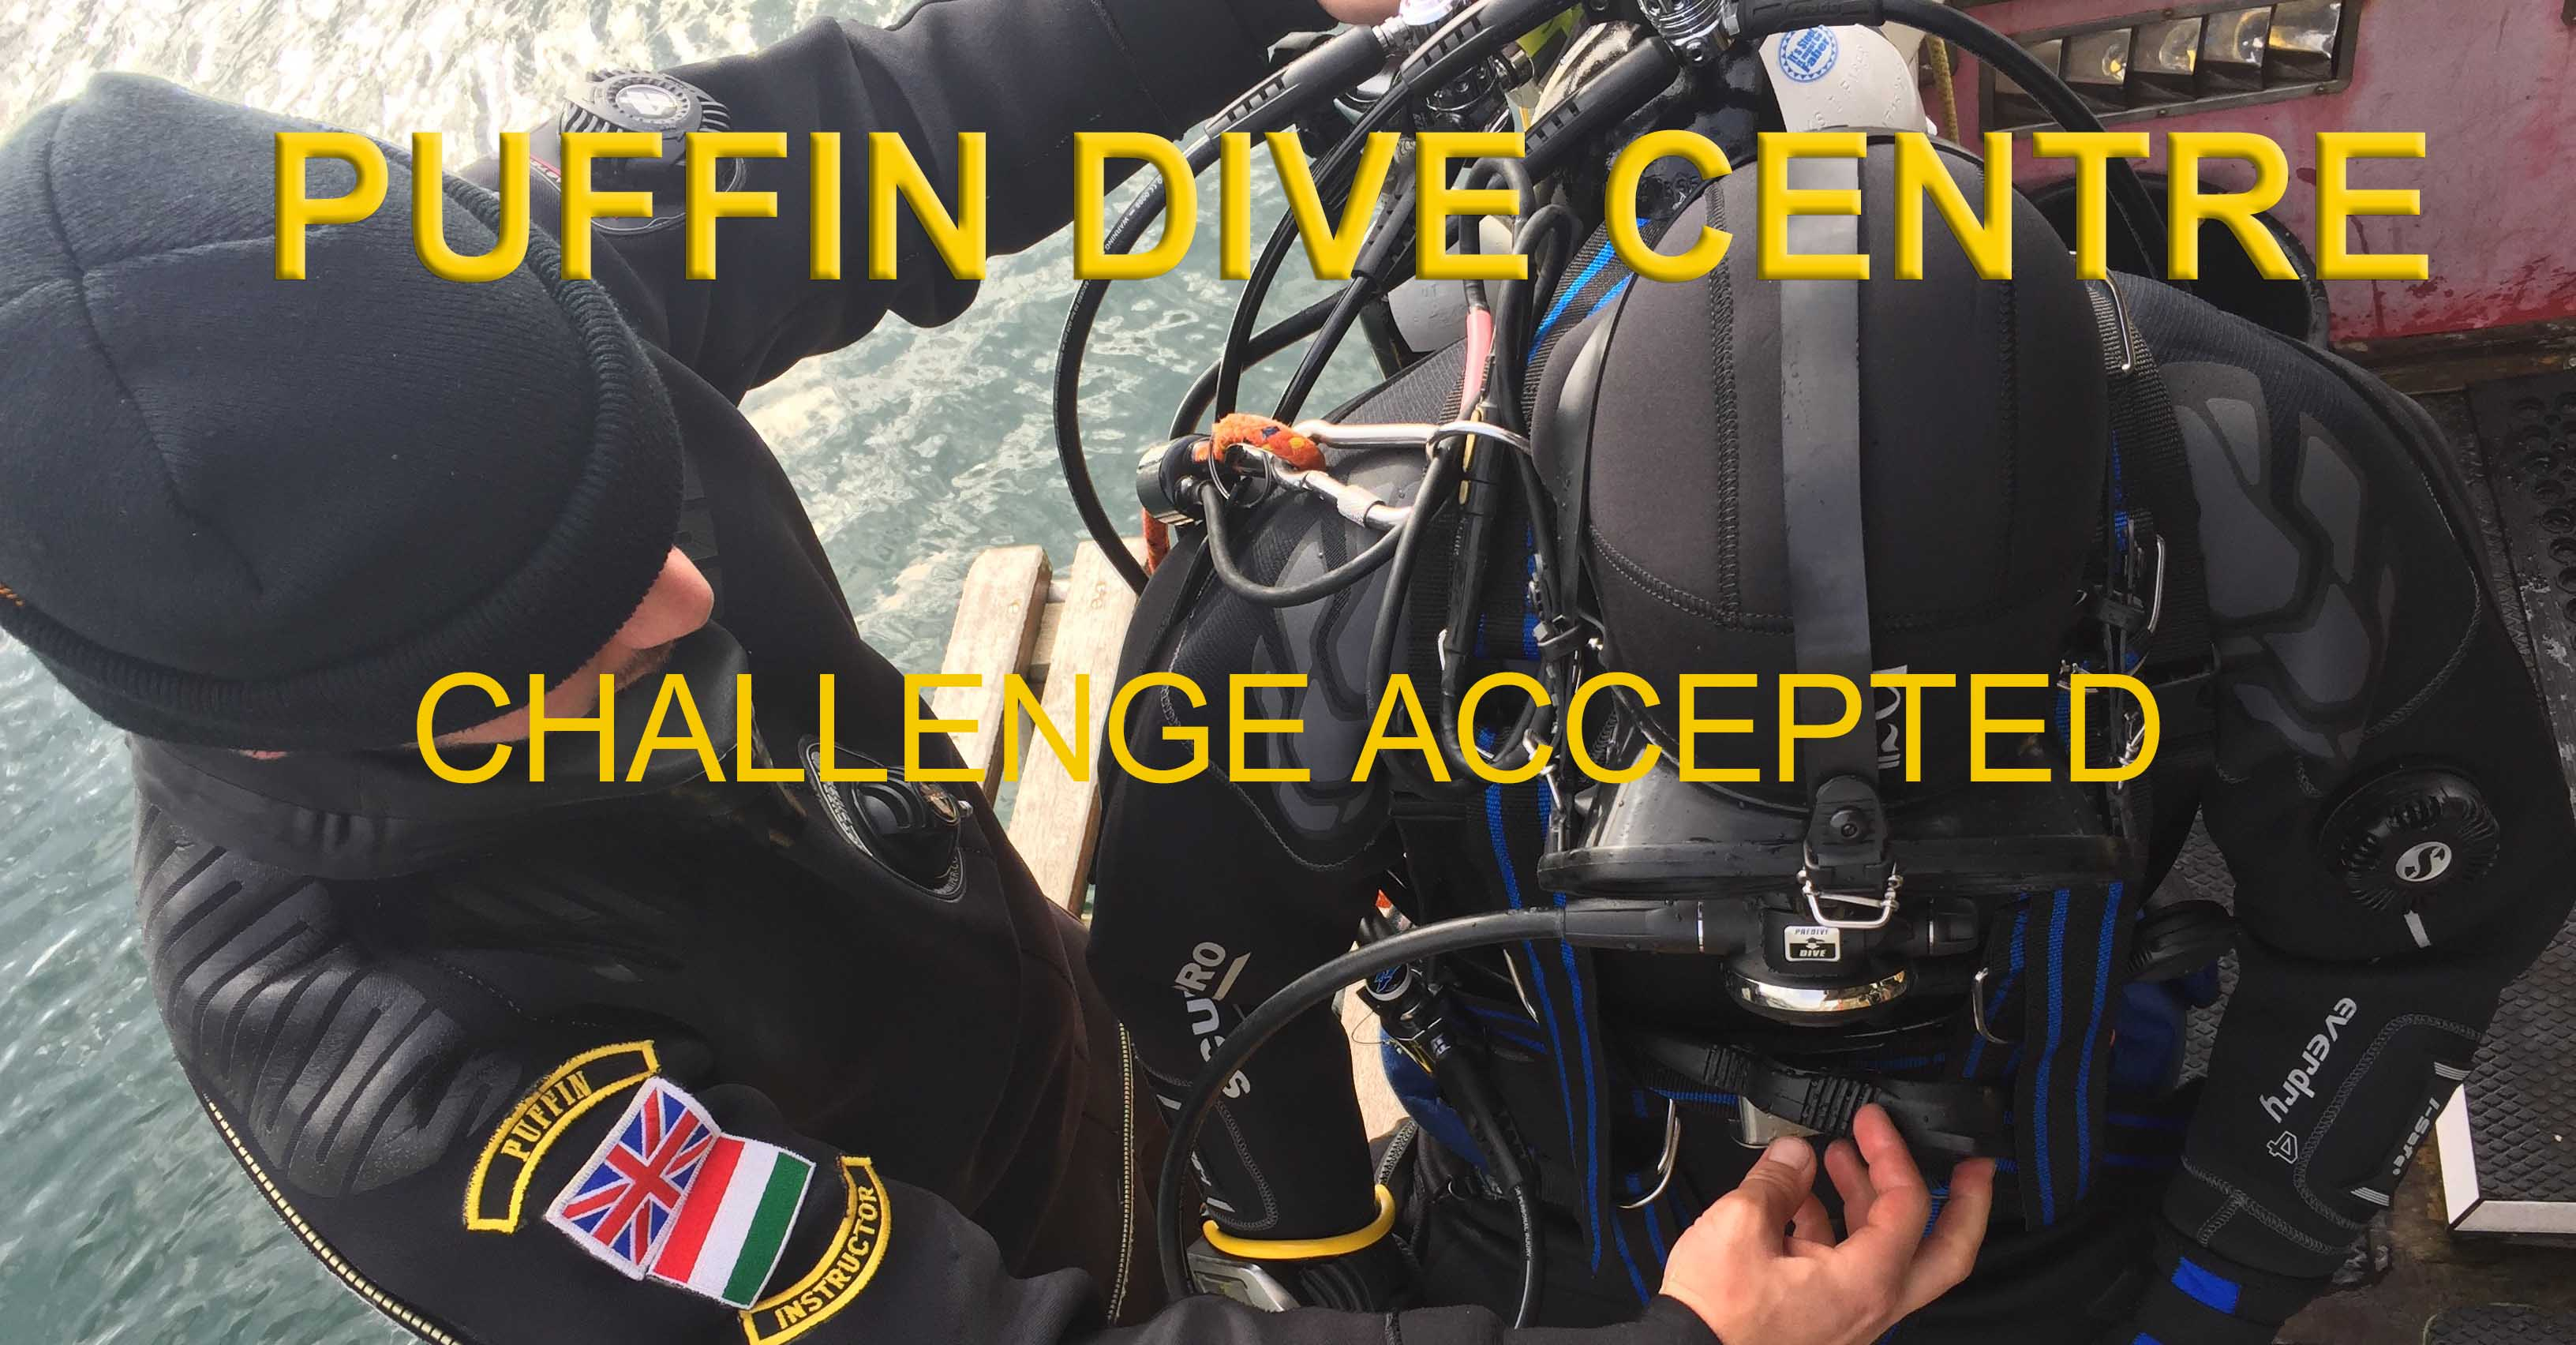 Commercial diving at Puffin Dive centre - Challenge accepted!